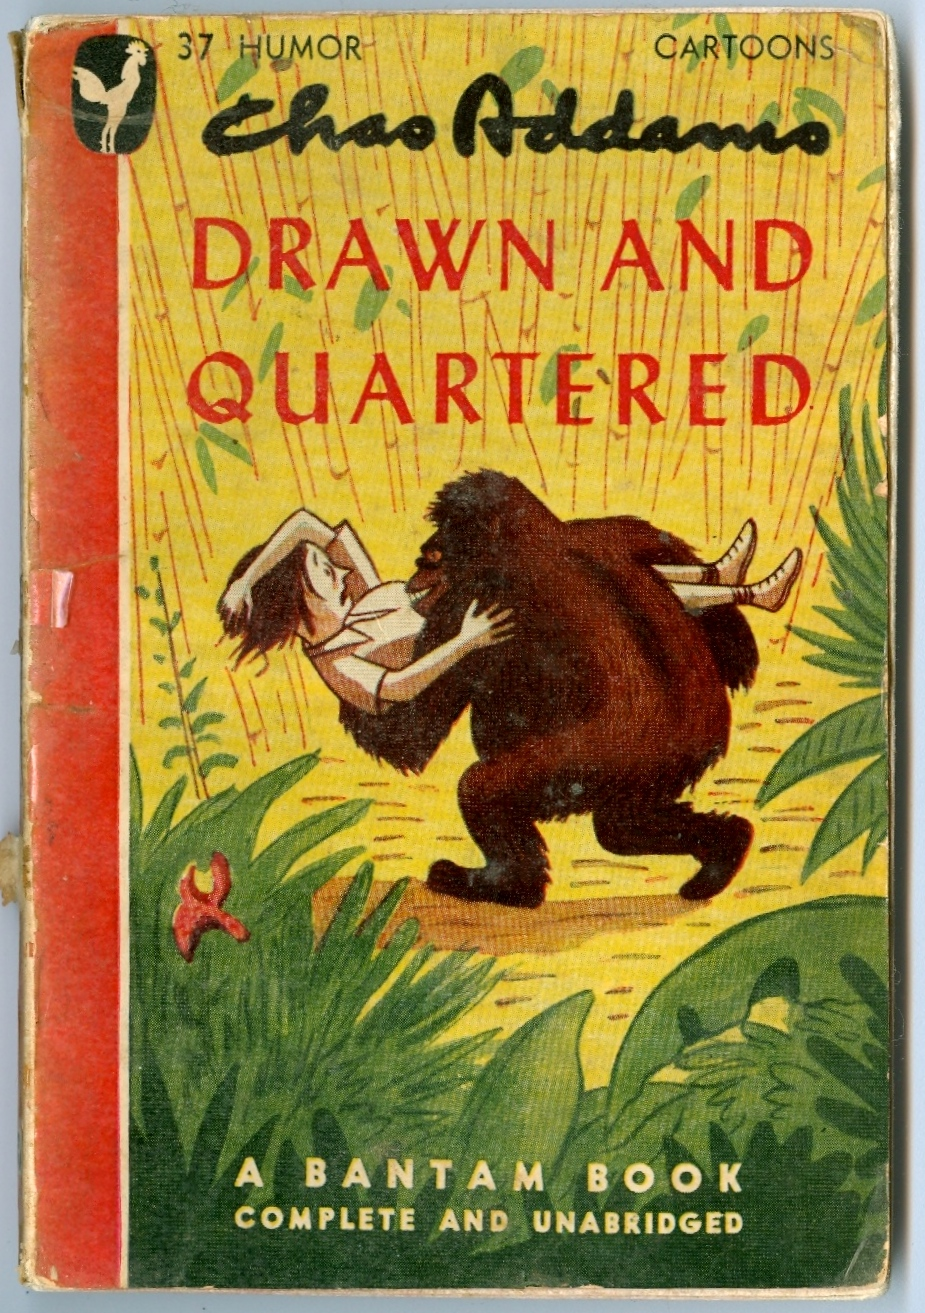 Drawn and Quartered 1946. This is the Bantam Book pocket edition of a popular Addams title. Foreward by Boris Karloff. via michaelmaslin.com